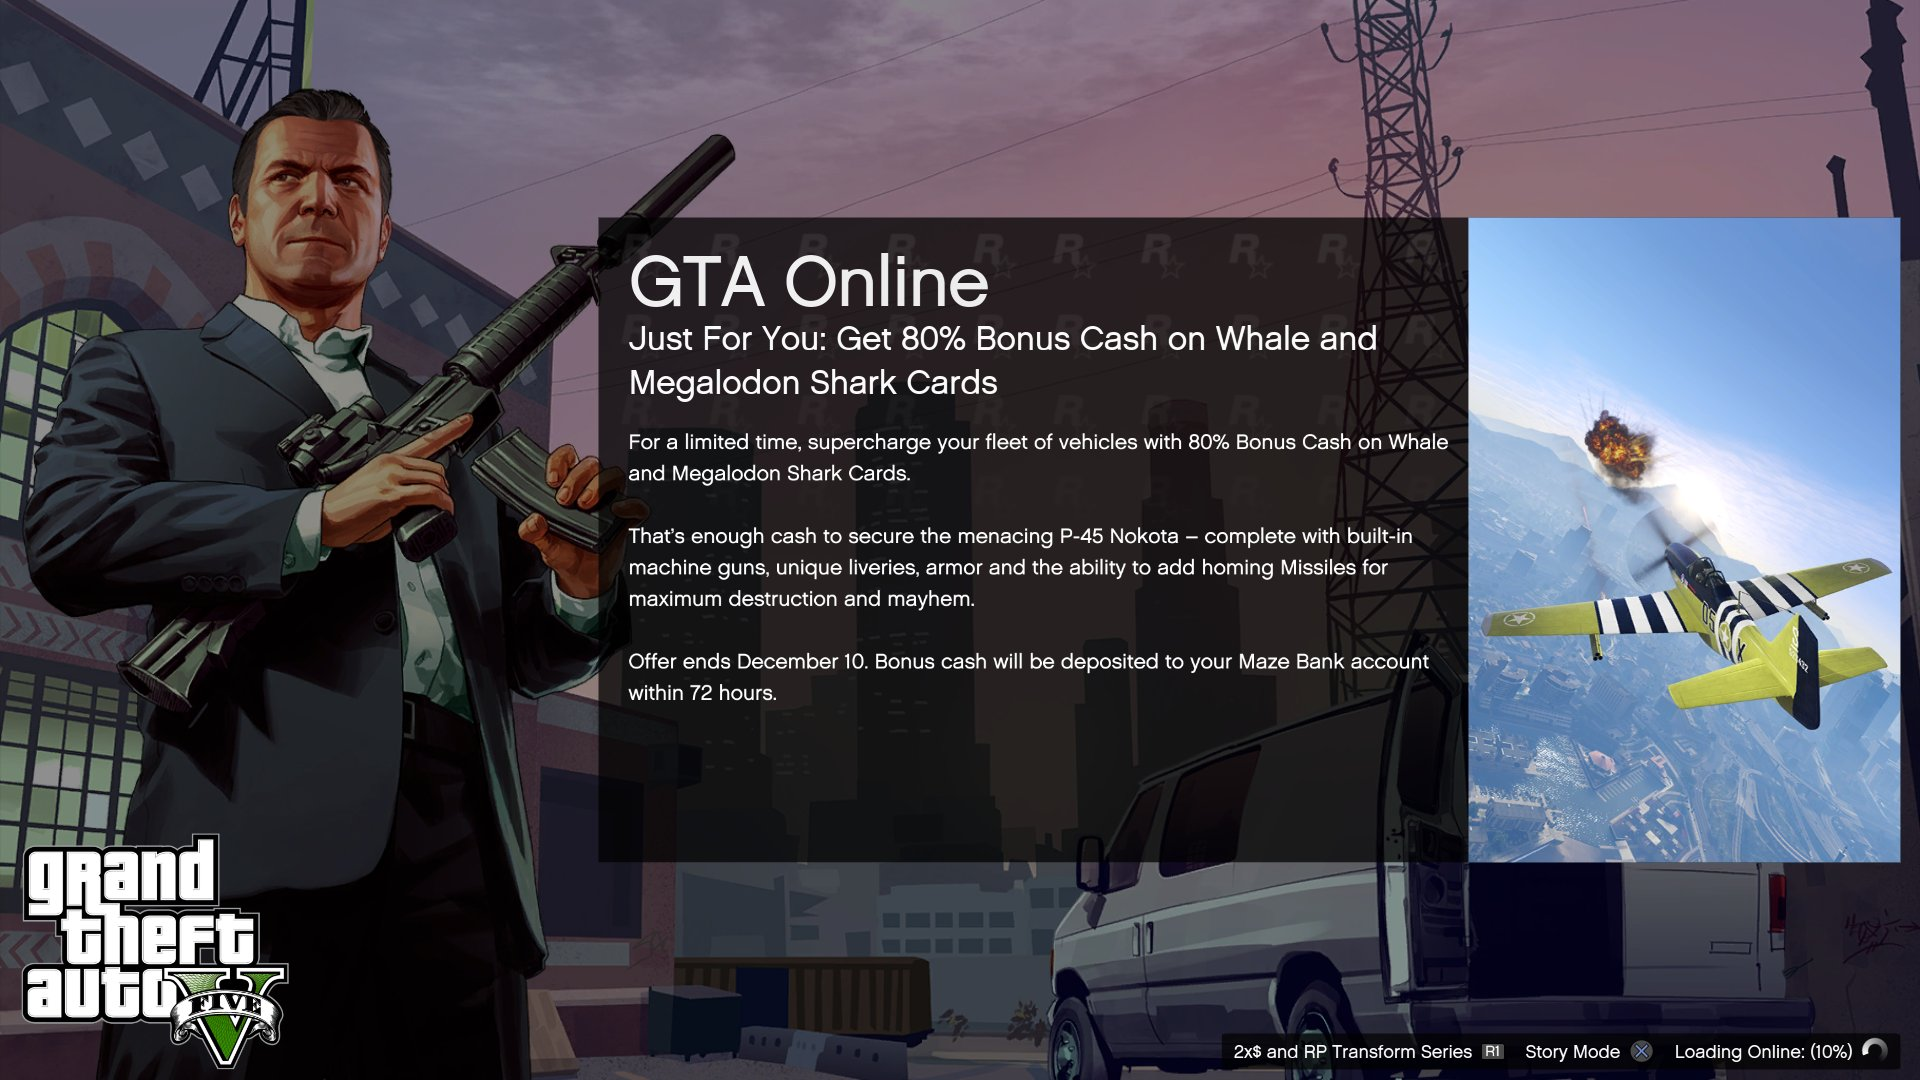 Hacker reduces GTA Online load times by roughly 70 percent | Ars Technica